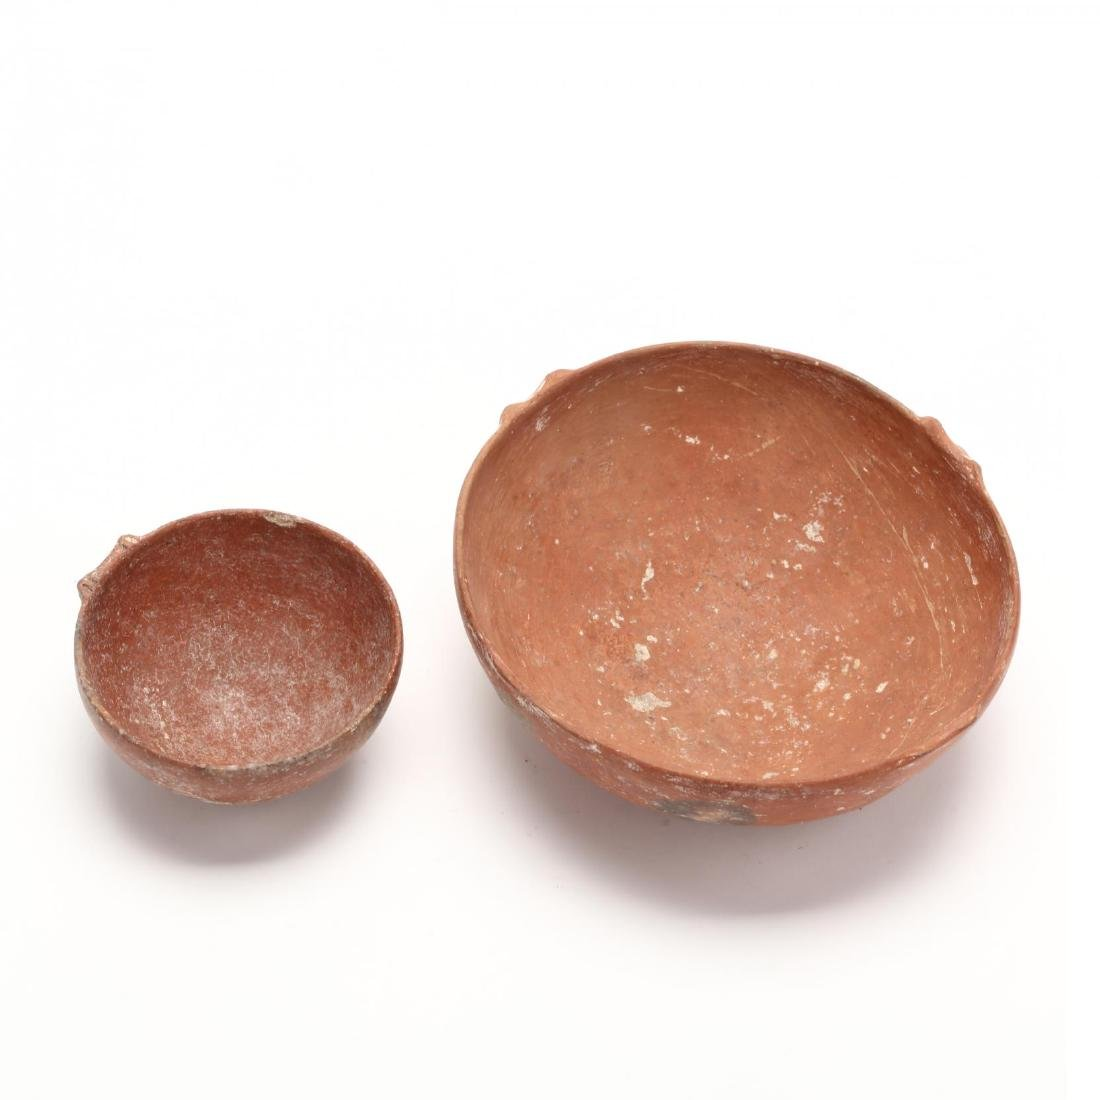 Two Cypriot Early Bronze Age Polished Red Ware Bowls - 2